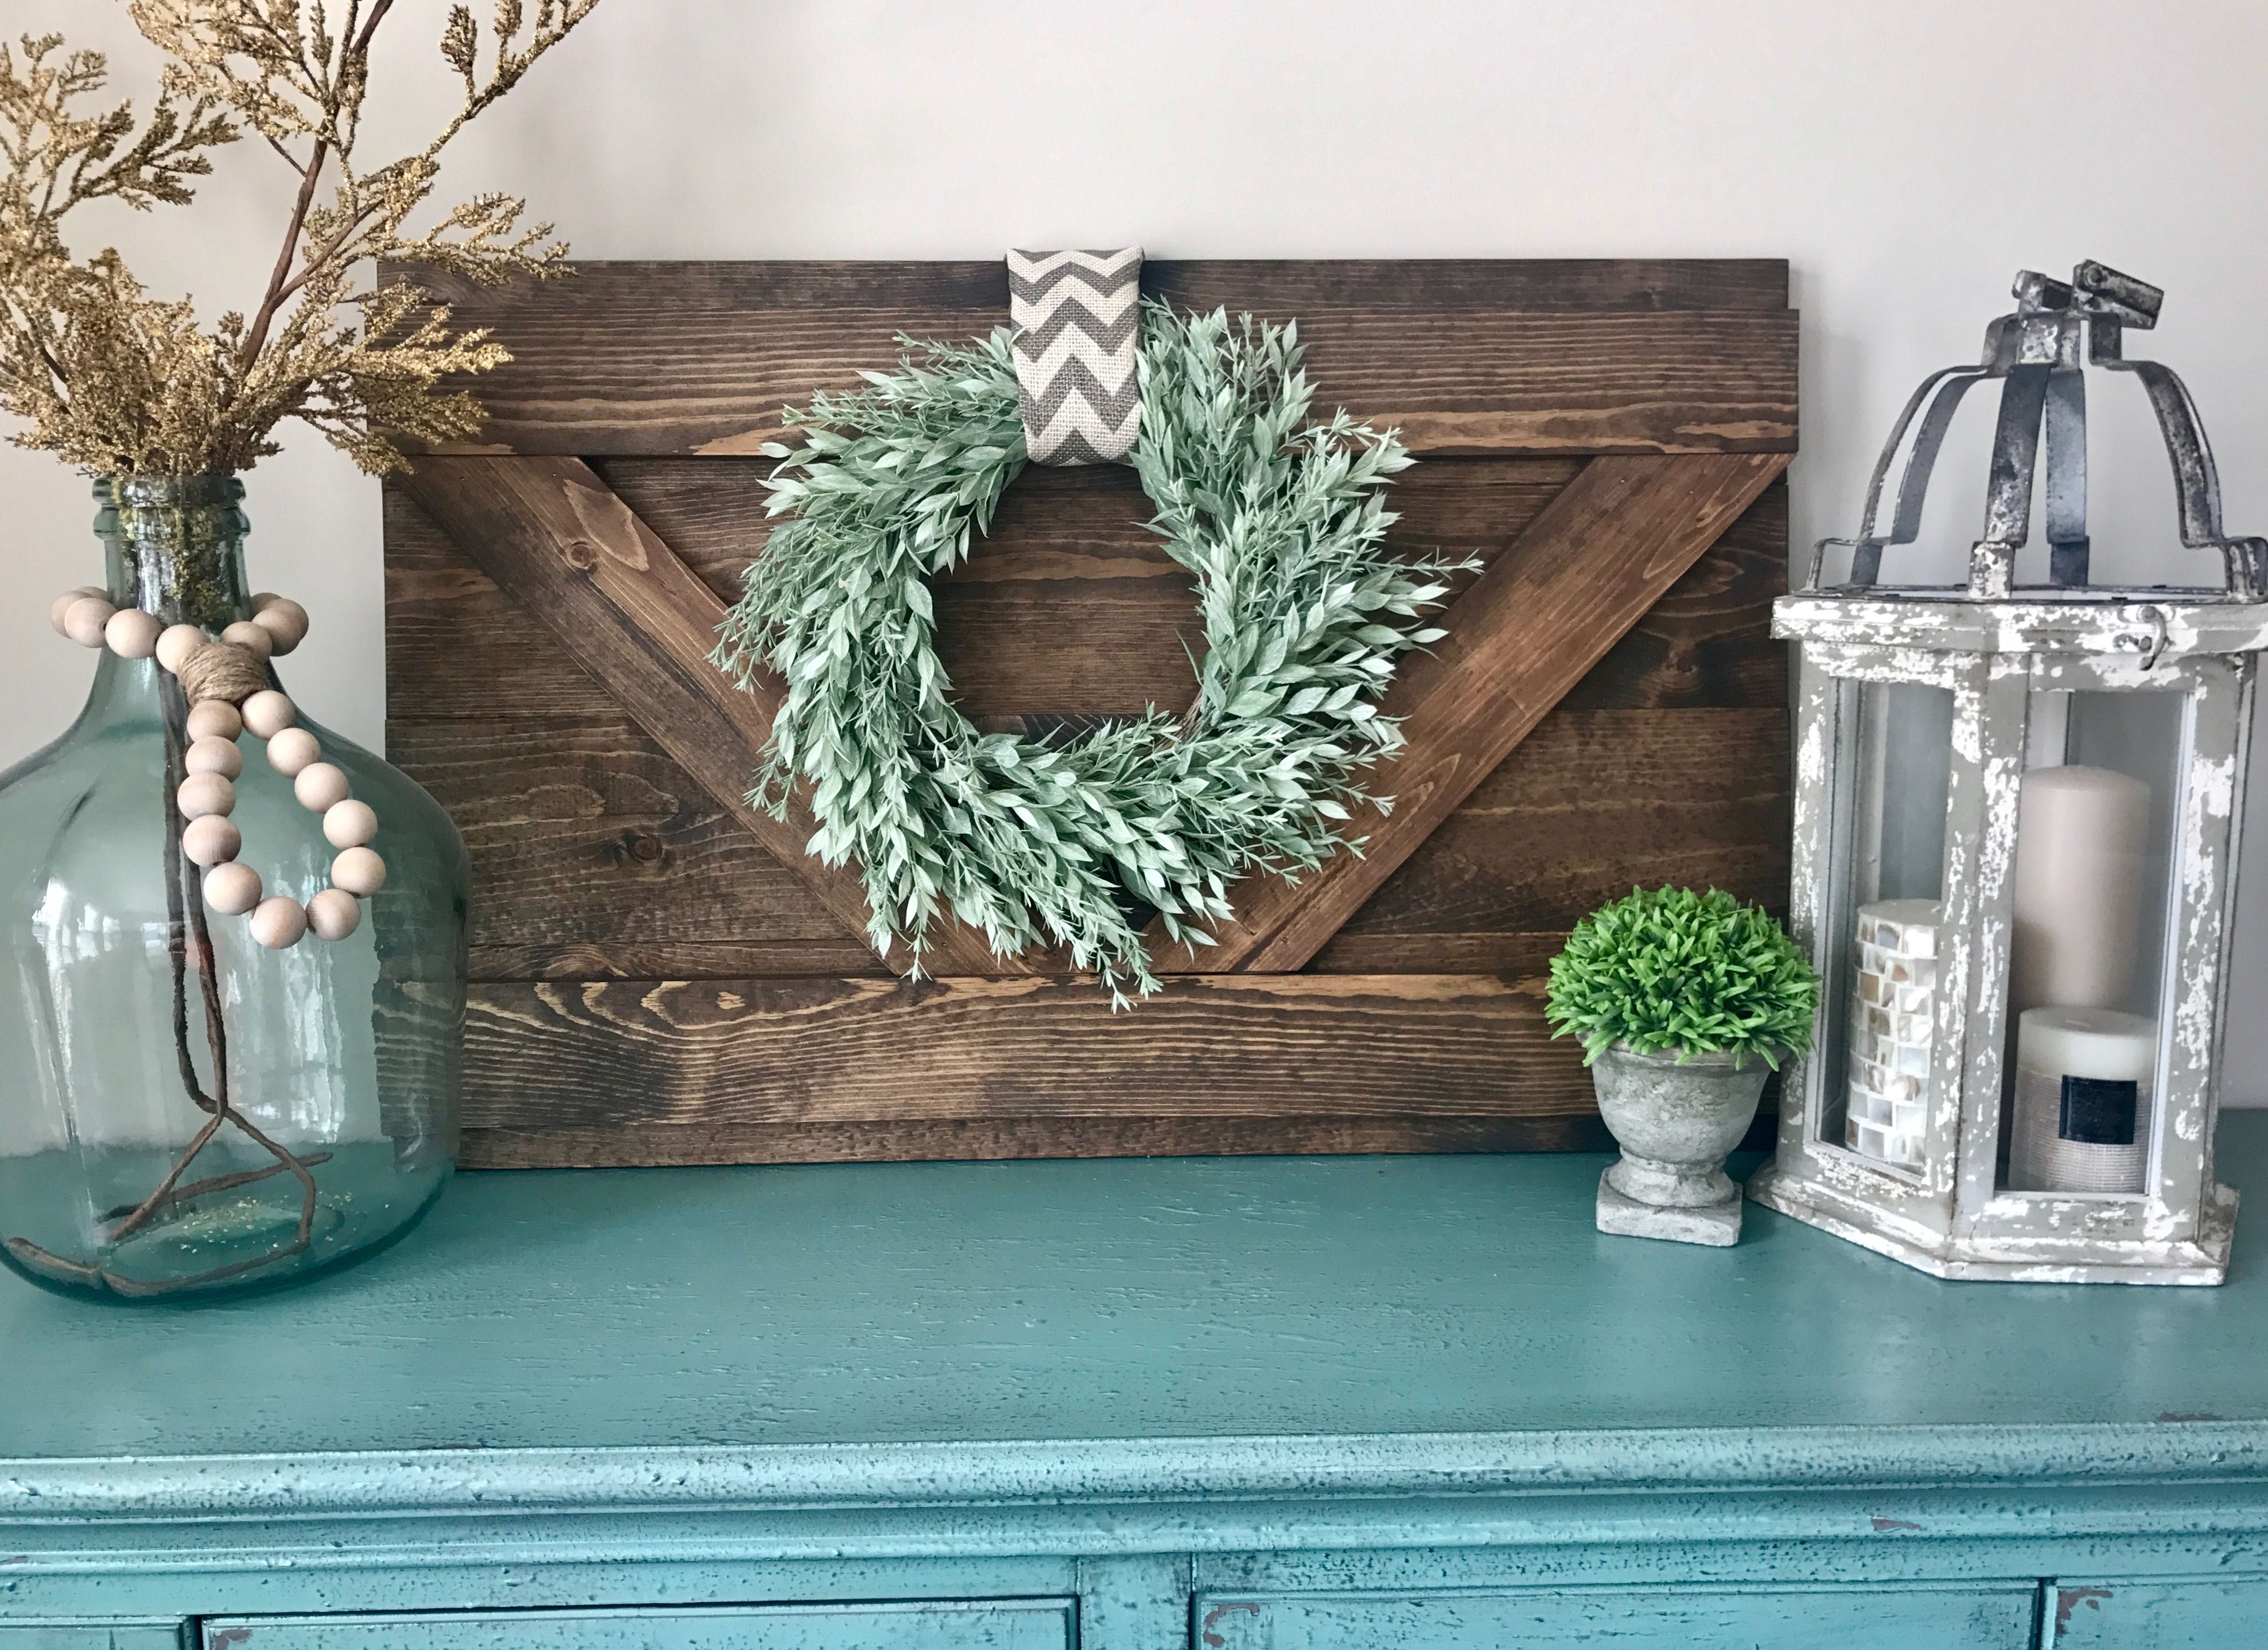 Extra Large Decorative Wood Shutter Rustic Wall Decor Farmhouse Barn Door Style Interior Wreath Holder